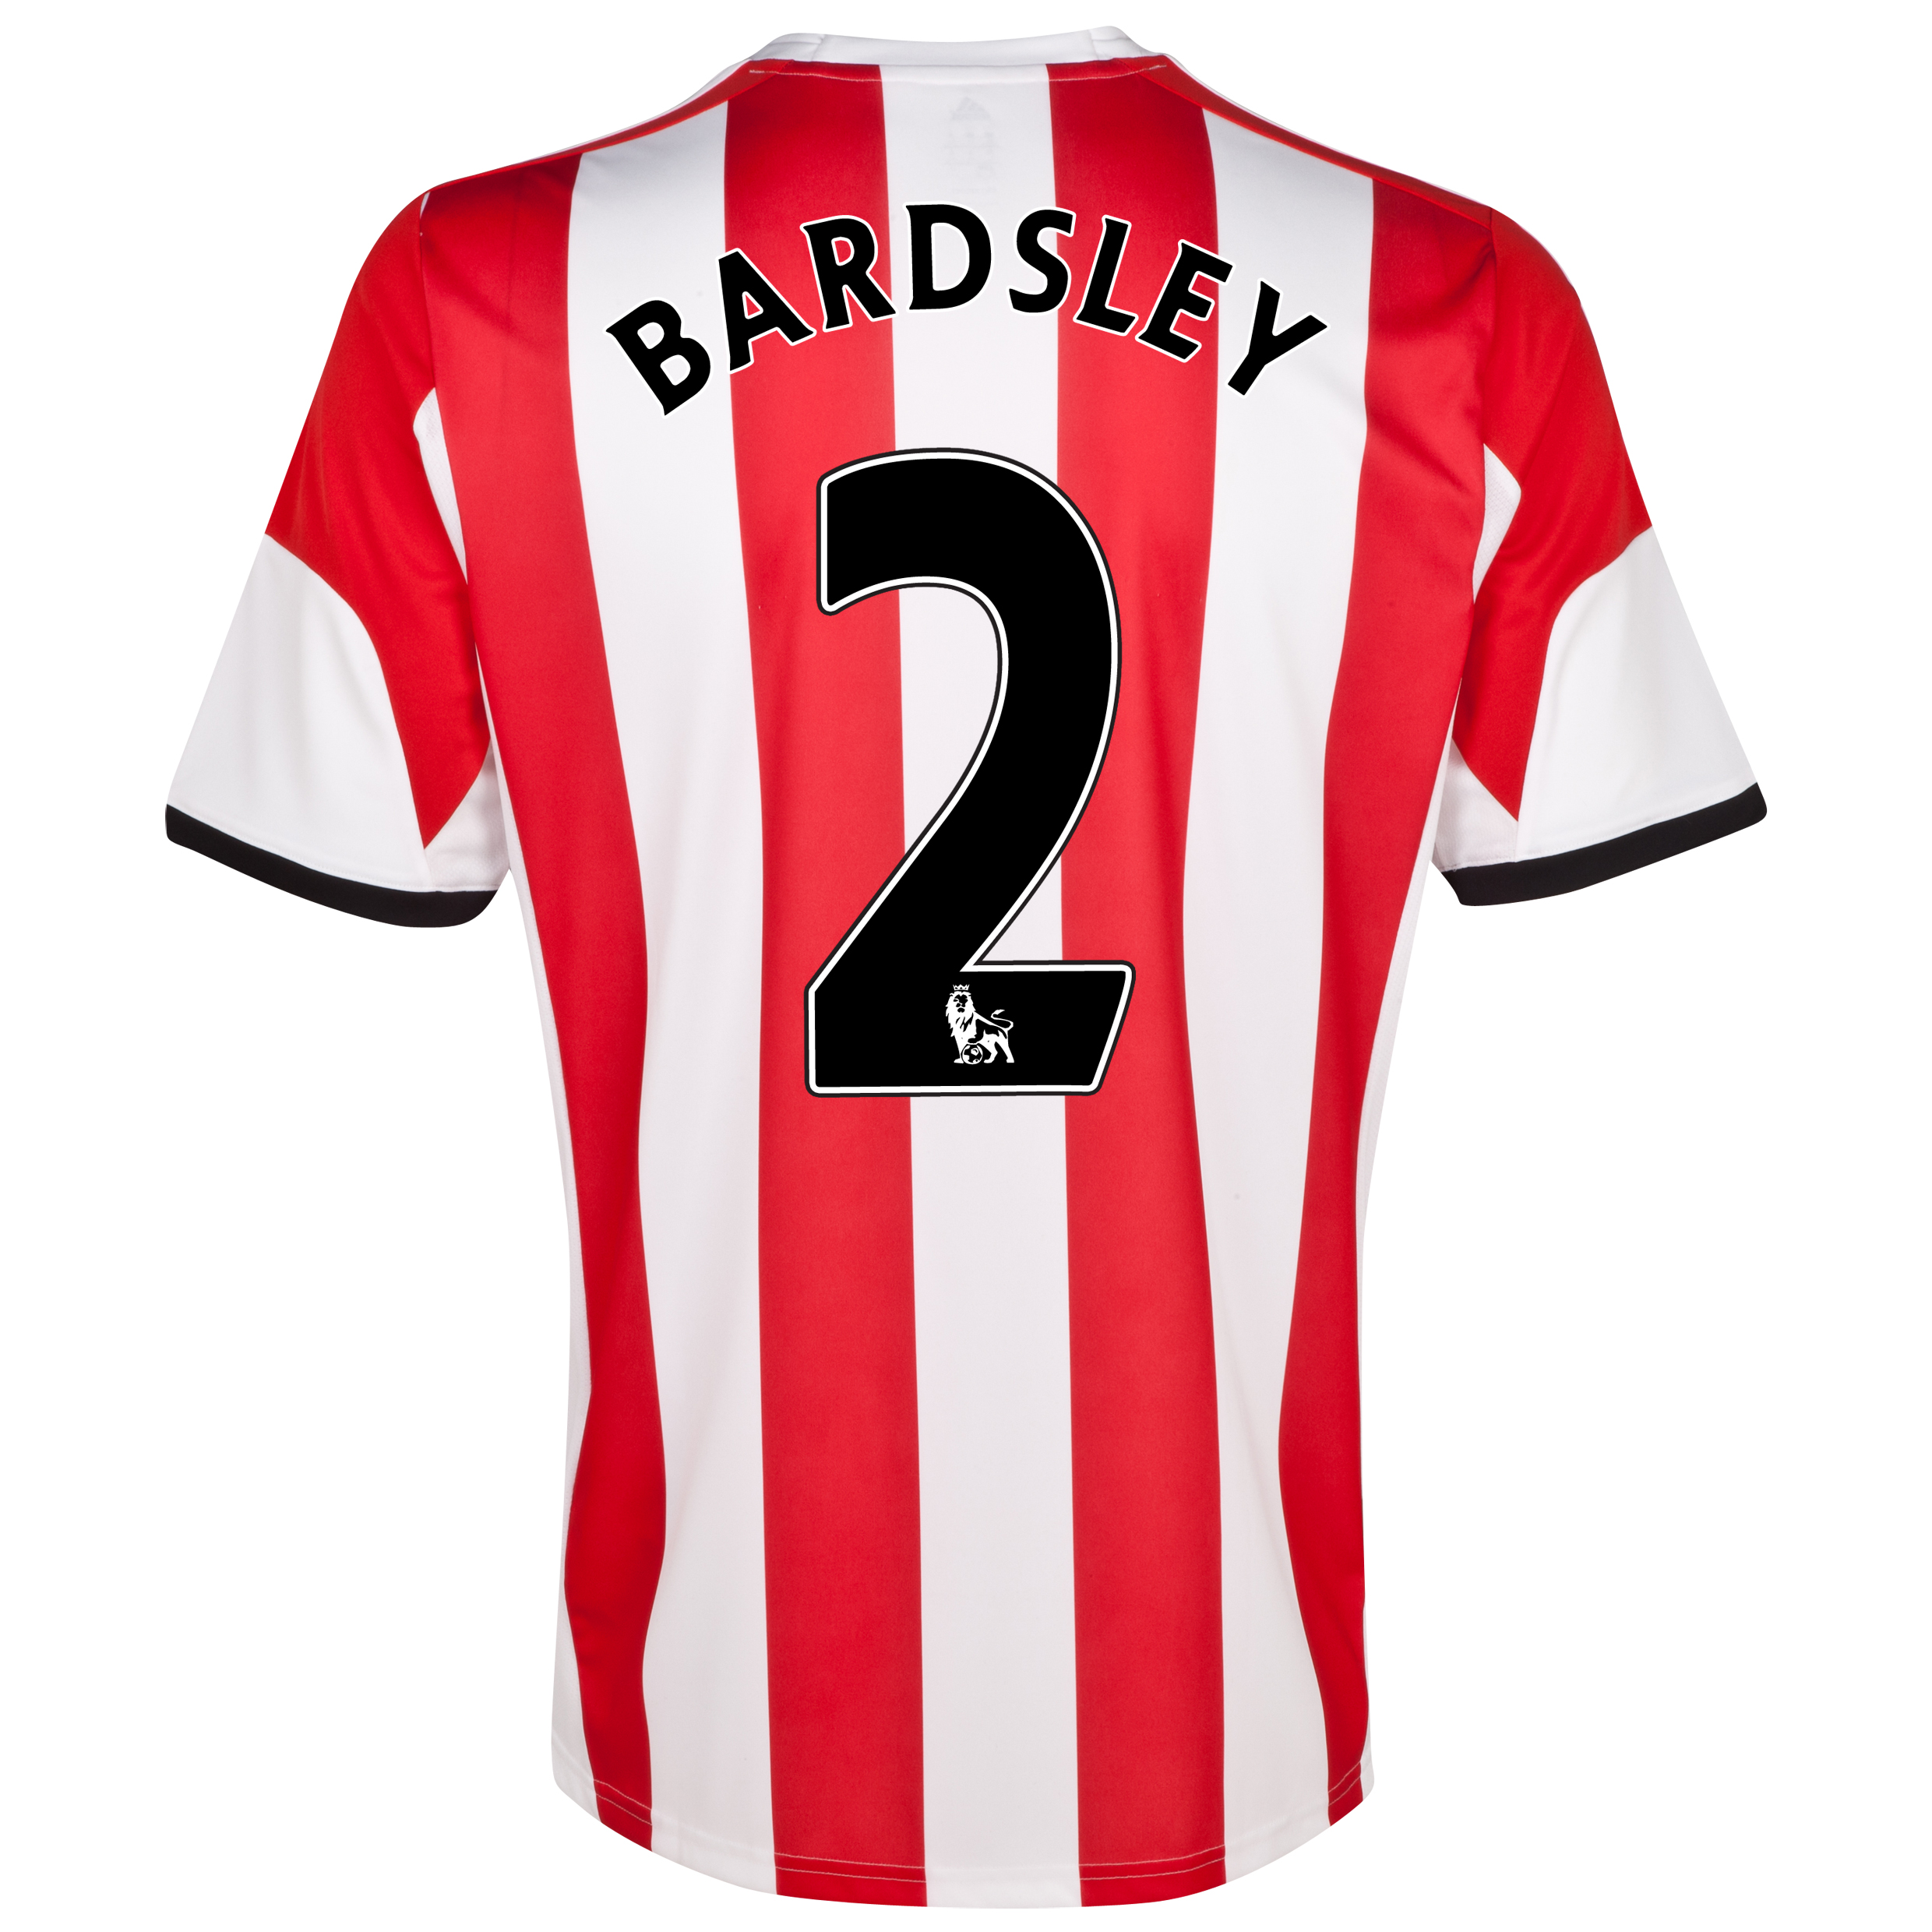 Sunderland Home Shirt 2013/14  with Bardsley 2 printing